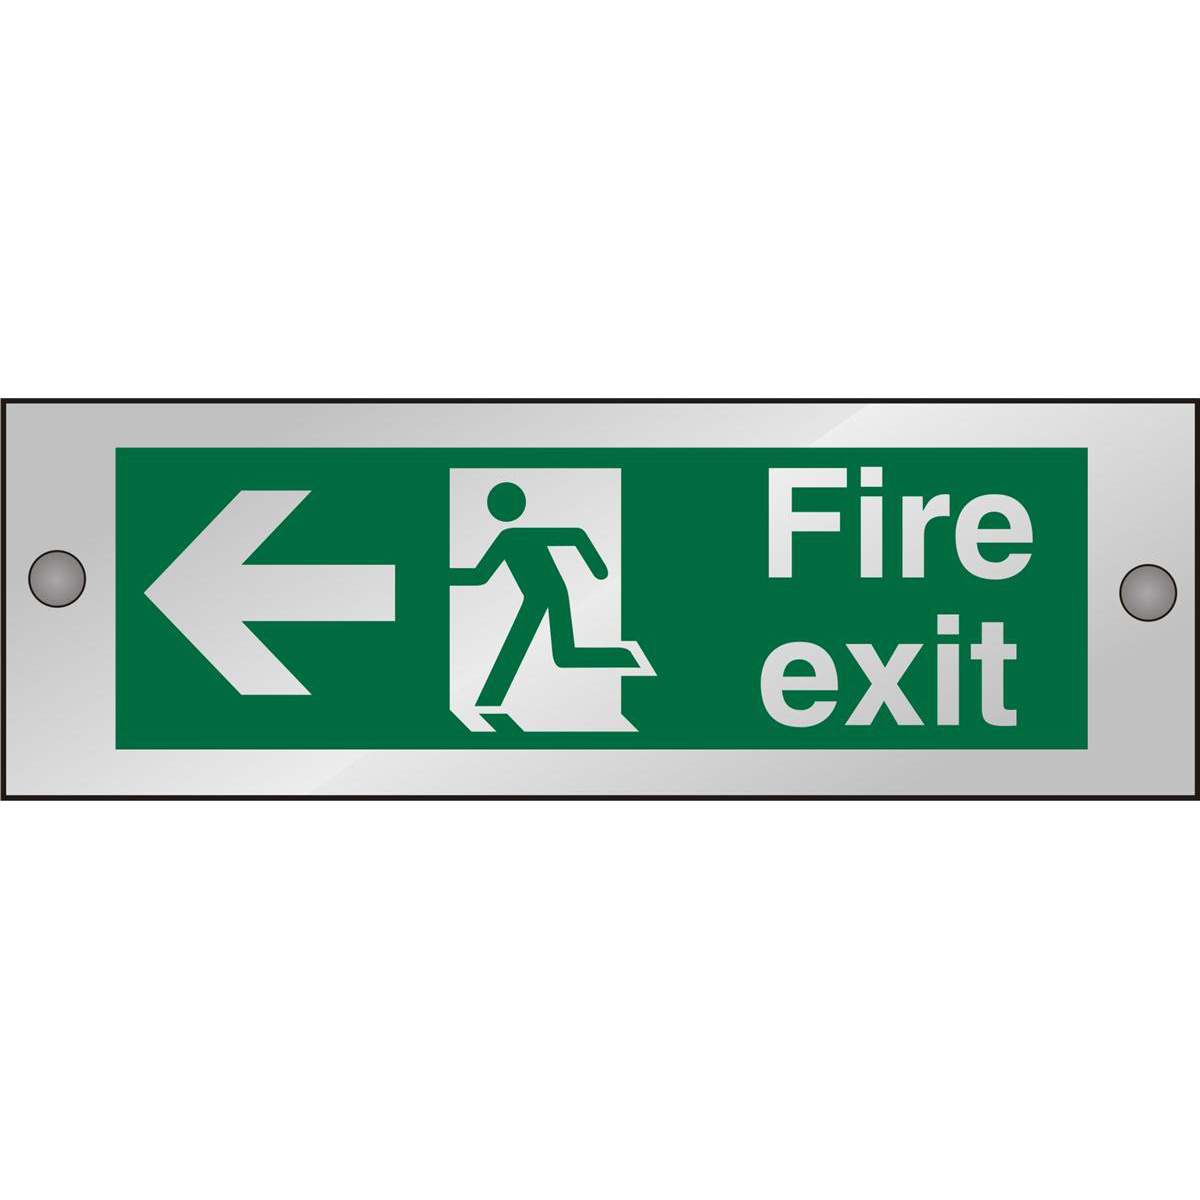 Clear Sign 300x100 5mm FireExit Man Running&Arrow Left Ref CACSP120300x100 Up to 10 Day Leadtime